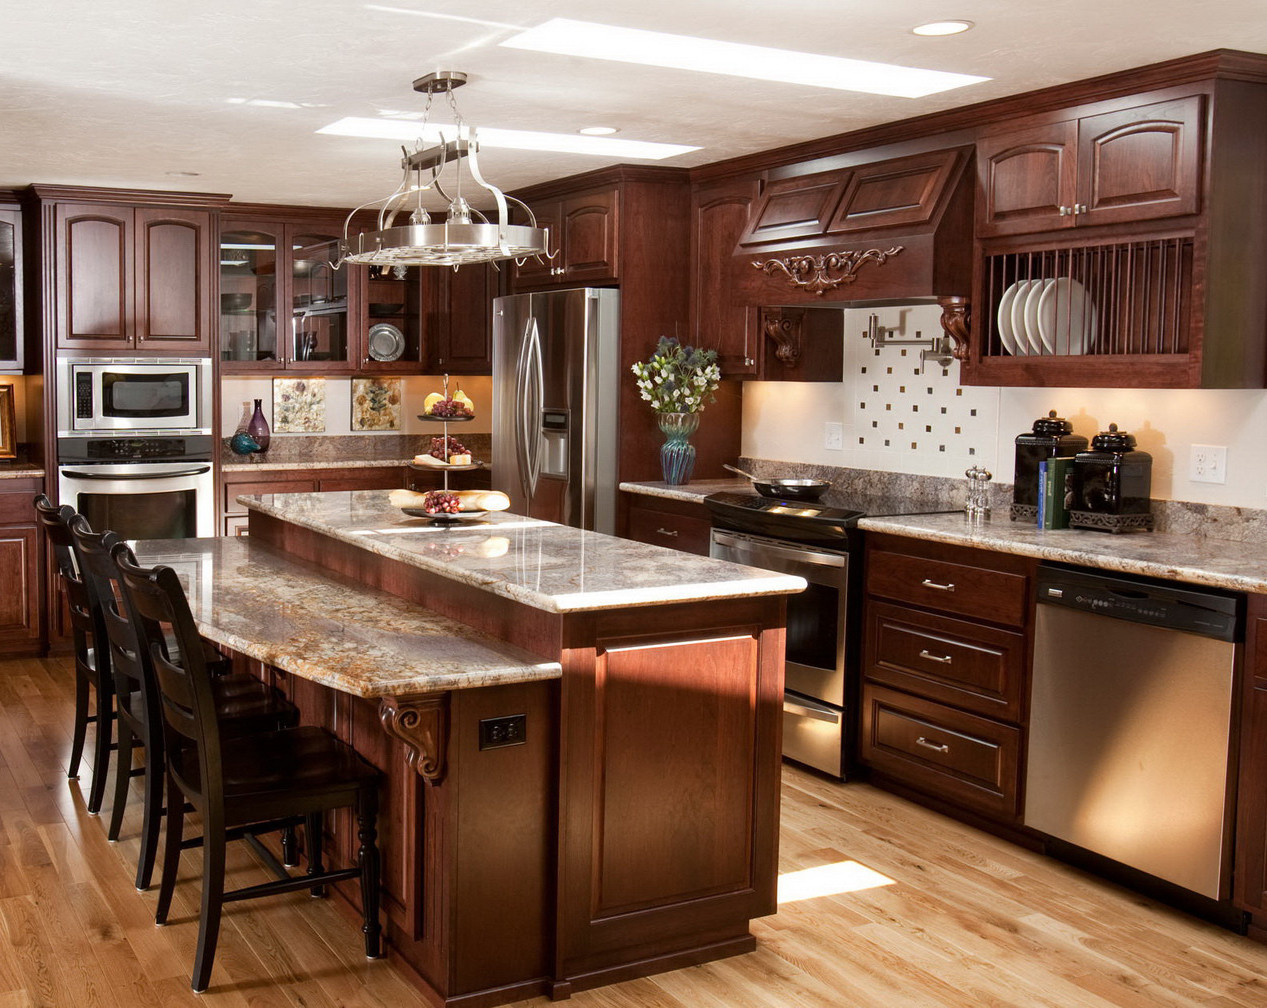 Best ideas about Kitchen Decor Items . Save or Pin Amazing of Kitchen Decoration From Kitchen Decor 604 Now.